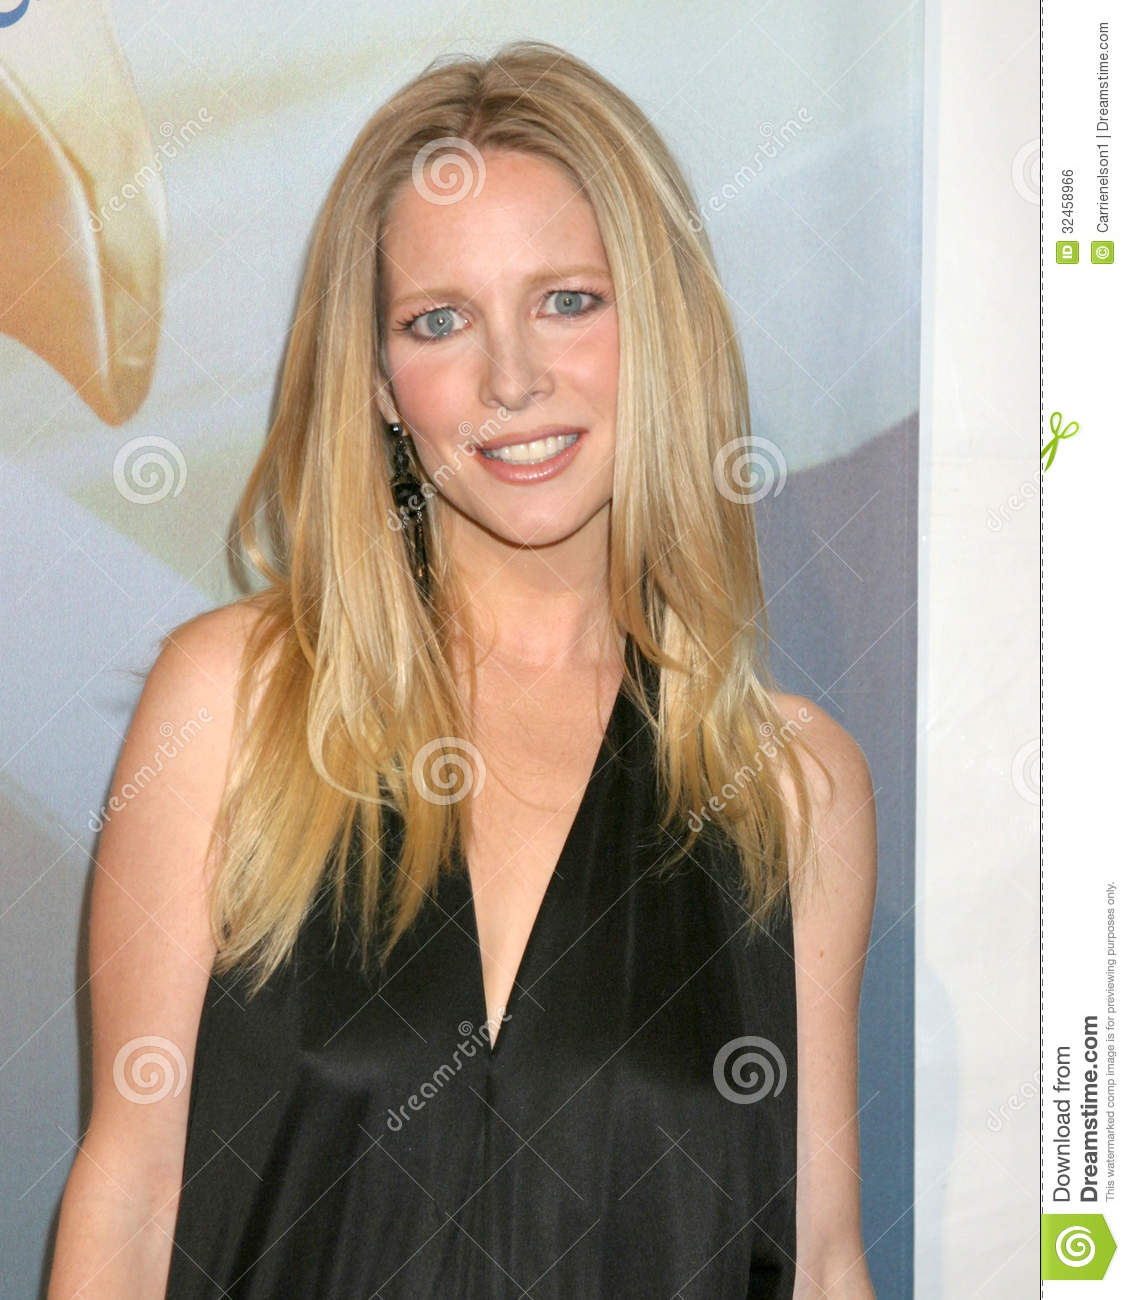 lauralee bell sisterlauralee bell age, lauralee bell family, lauralee bell instagram, lauralee bell net worth, lauralee bell and husband, lauralee bell twitter, lauralee bell parents, lauralee bell bio, lauralee bell 2016, lauralee bell young and the restless, lauralee bell biography, lauralee bell martin, lauralee bell scott martin, lauralee bell and scott martin photos, lauralee bell house, lauralee bell sister, lauralee bell and kristen bell related, lauralee bell actress, lauralee bell imdb, lauralee bell images